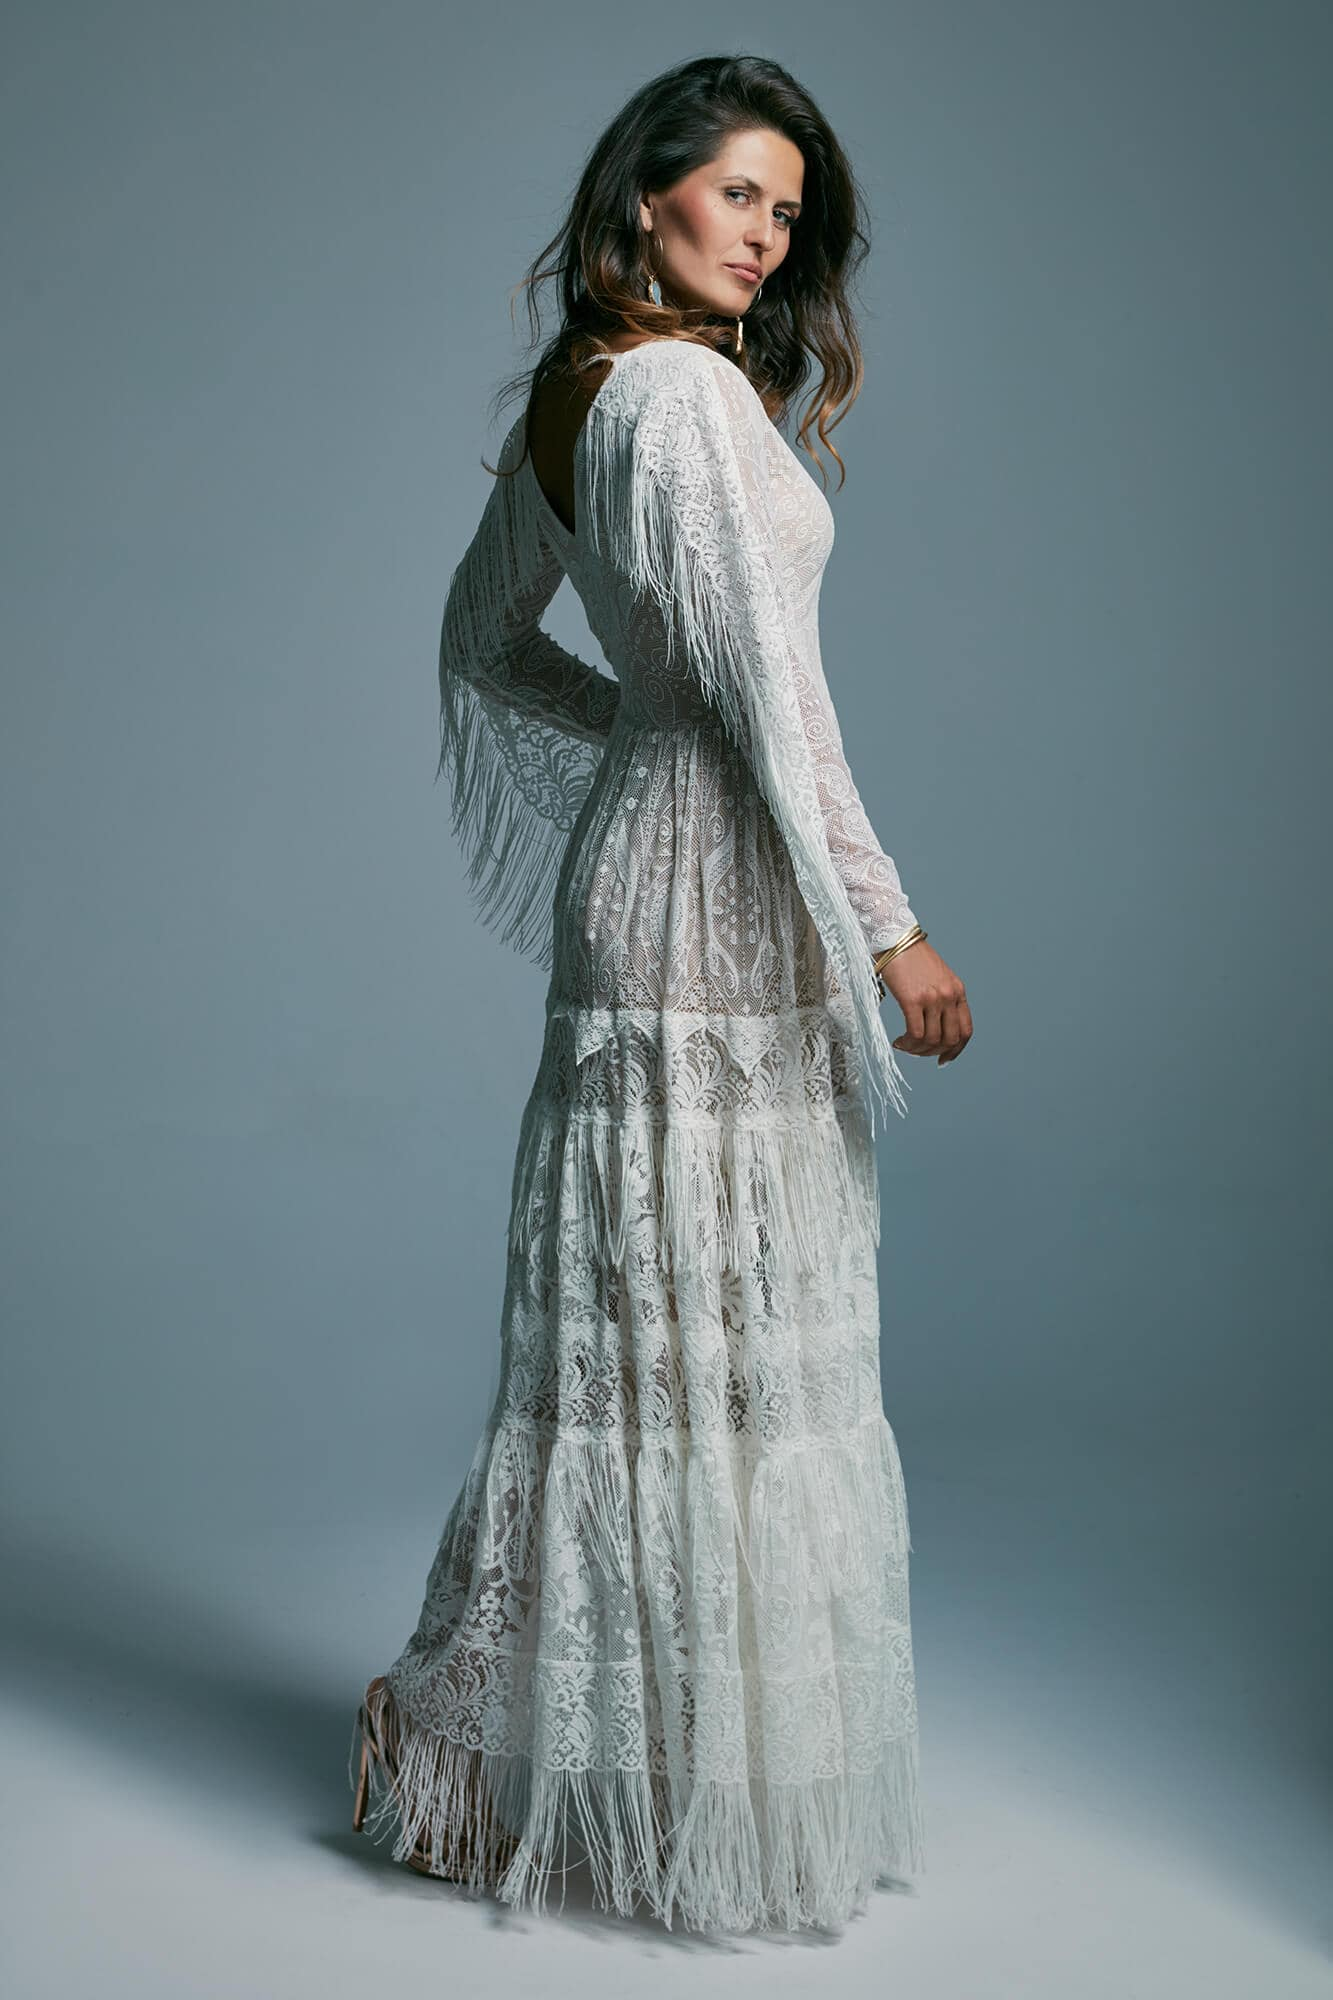 A wedding dress with a long, decorated sleeves and a fringed skirt Porto 7